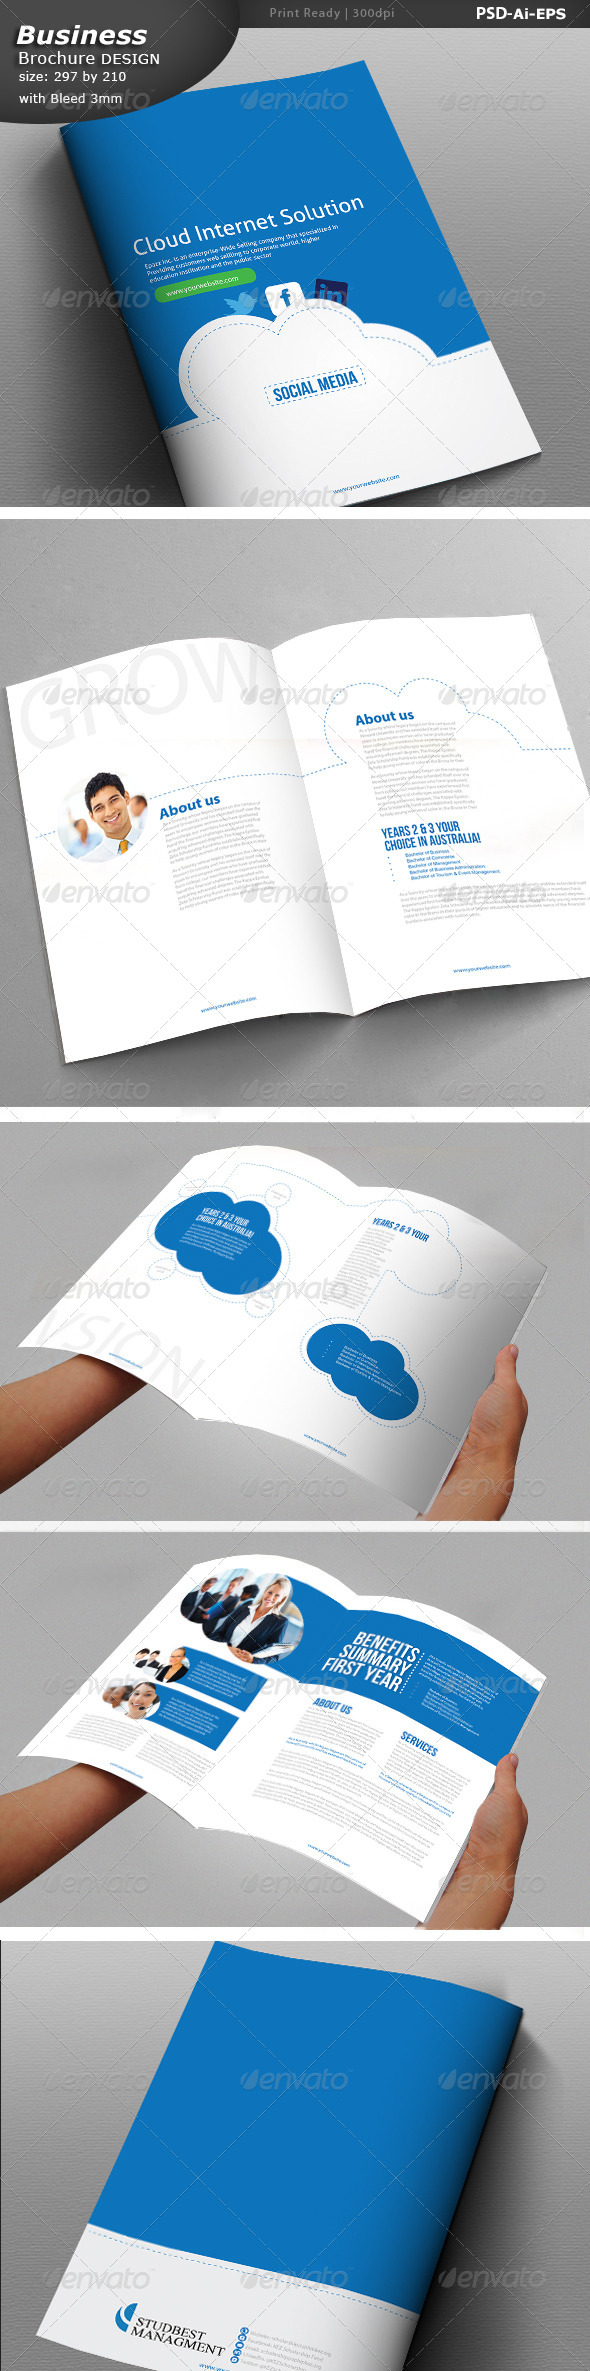 Cloud Social Media  Business Brochure - Brochures Print Templates